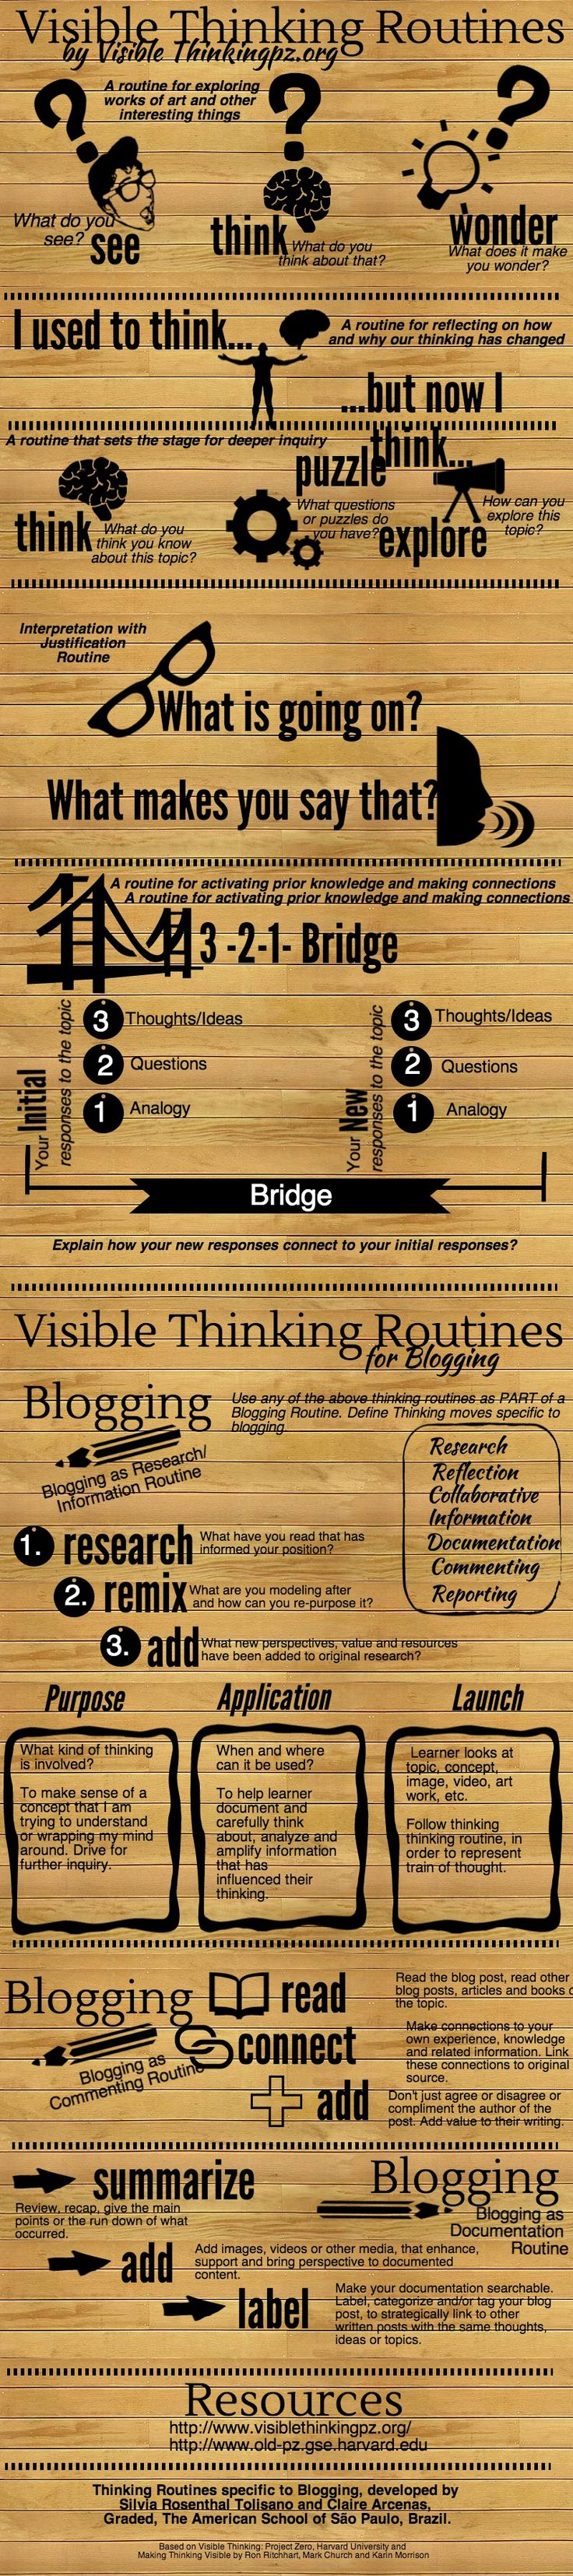 Visual To Help You Integrate Visible Thinking Routines in Your Class ~ Educational Technology and Mobile Learning